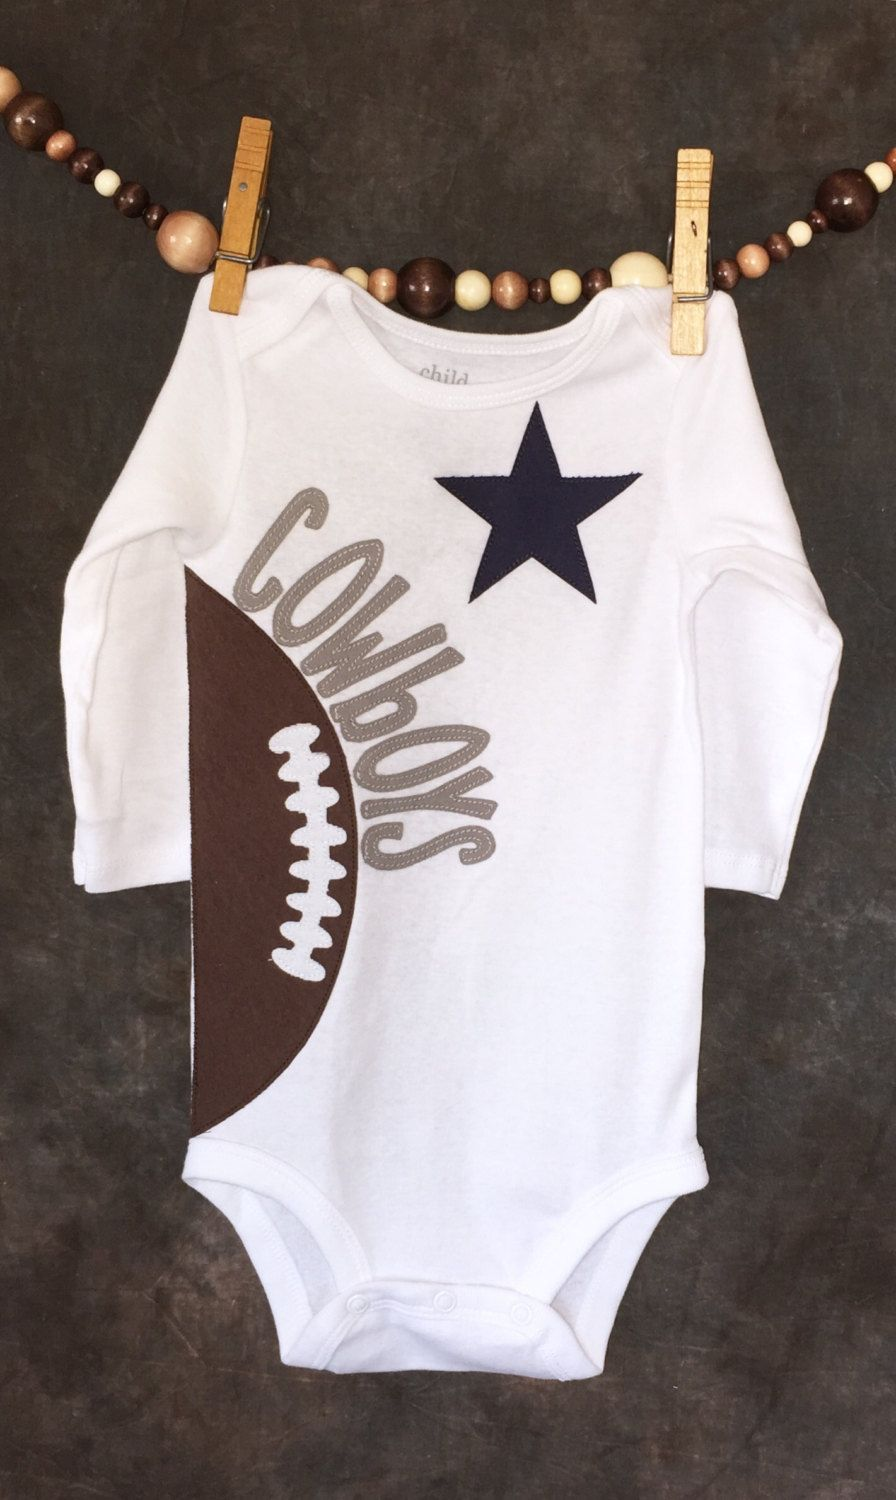 Personalized Dallas Cowboys NFL Team Football Onesie. Size newborn - 18  months. by Loonybecks 20a85e827